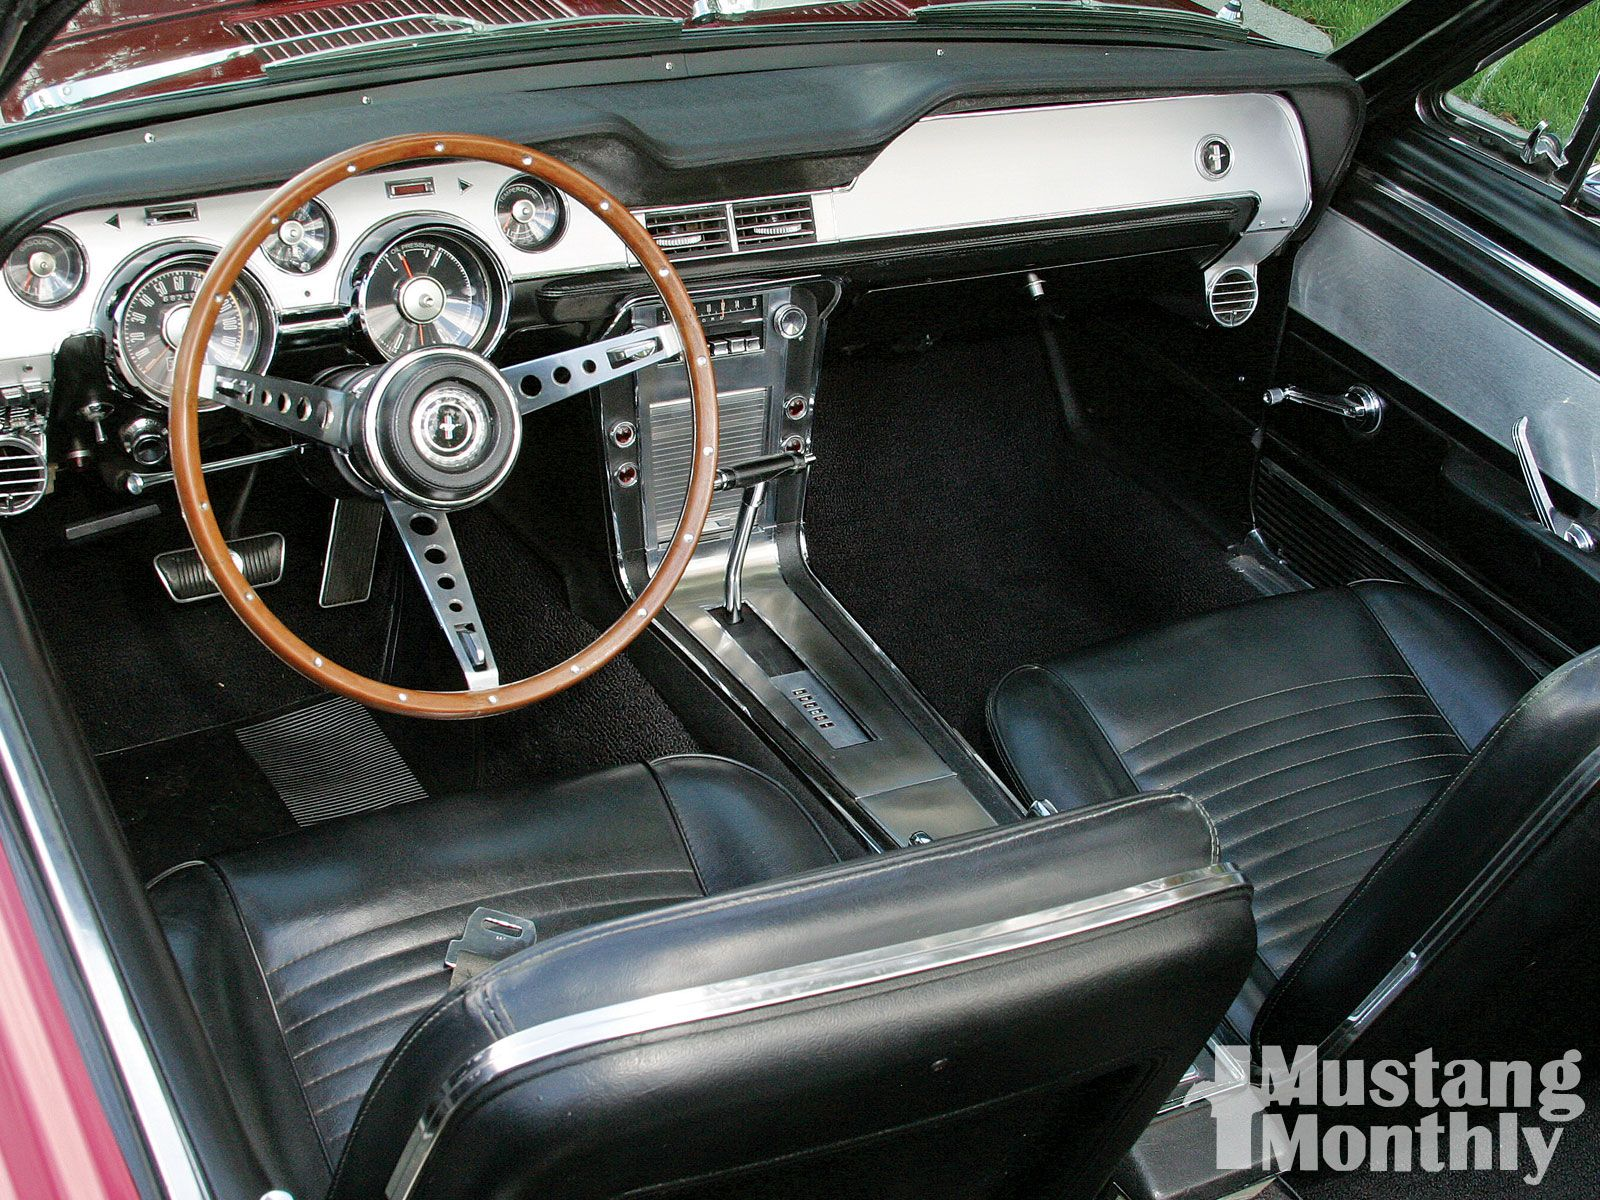 1967 ford mustang convertible interior - 1967 Ford Mustang Convertible Interior